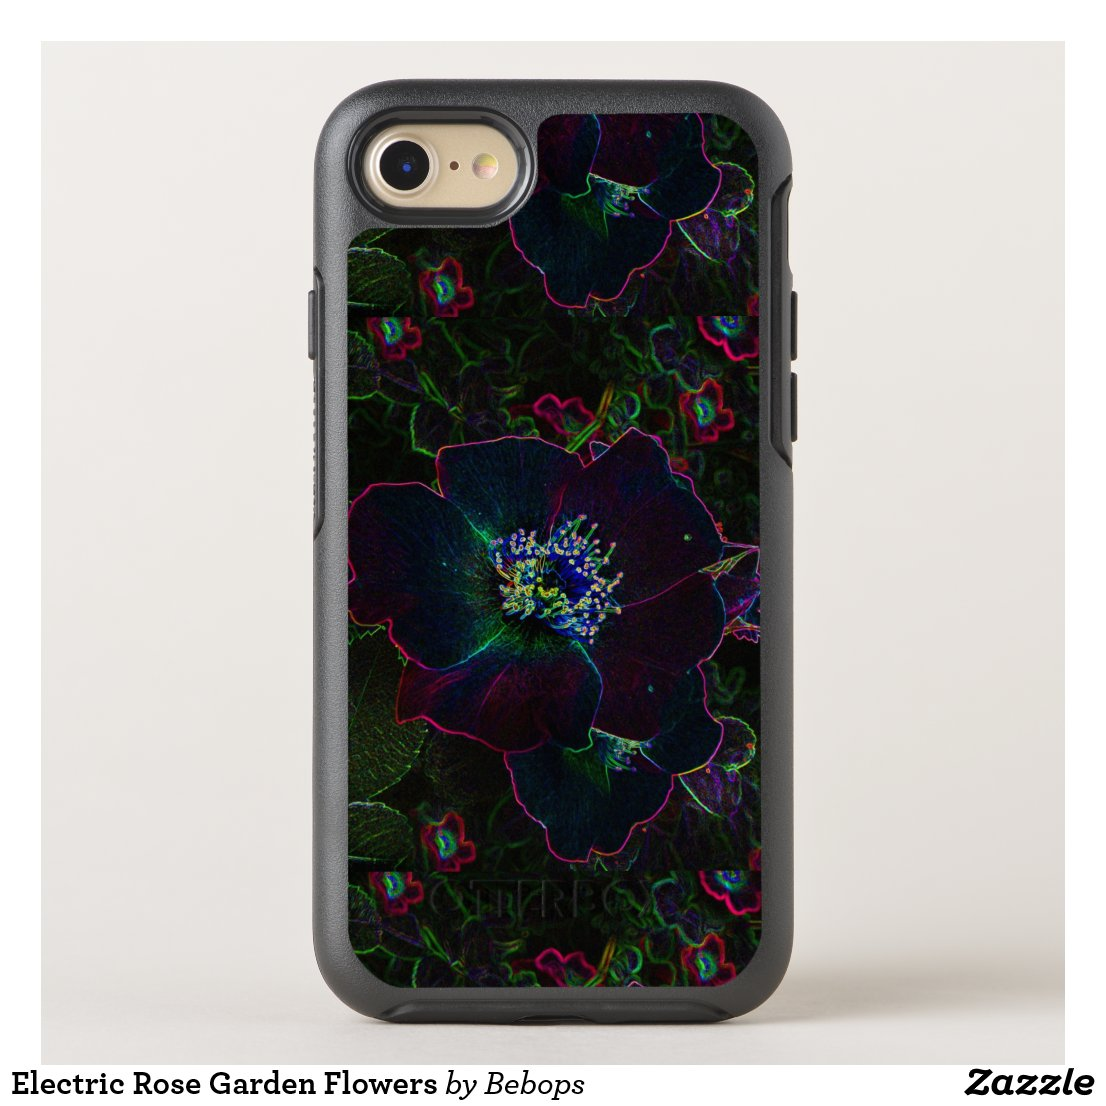 Electric Rose Garden Flowers OtterBox Symmetry iPhone 7 Case